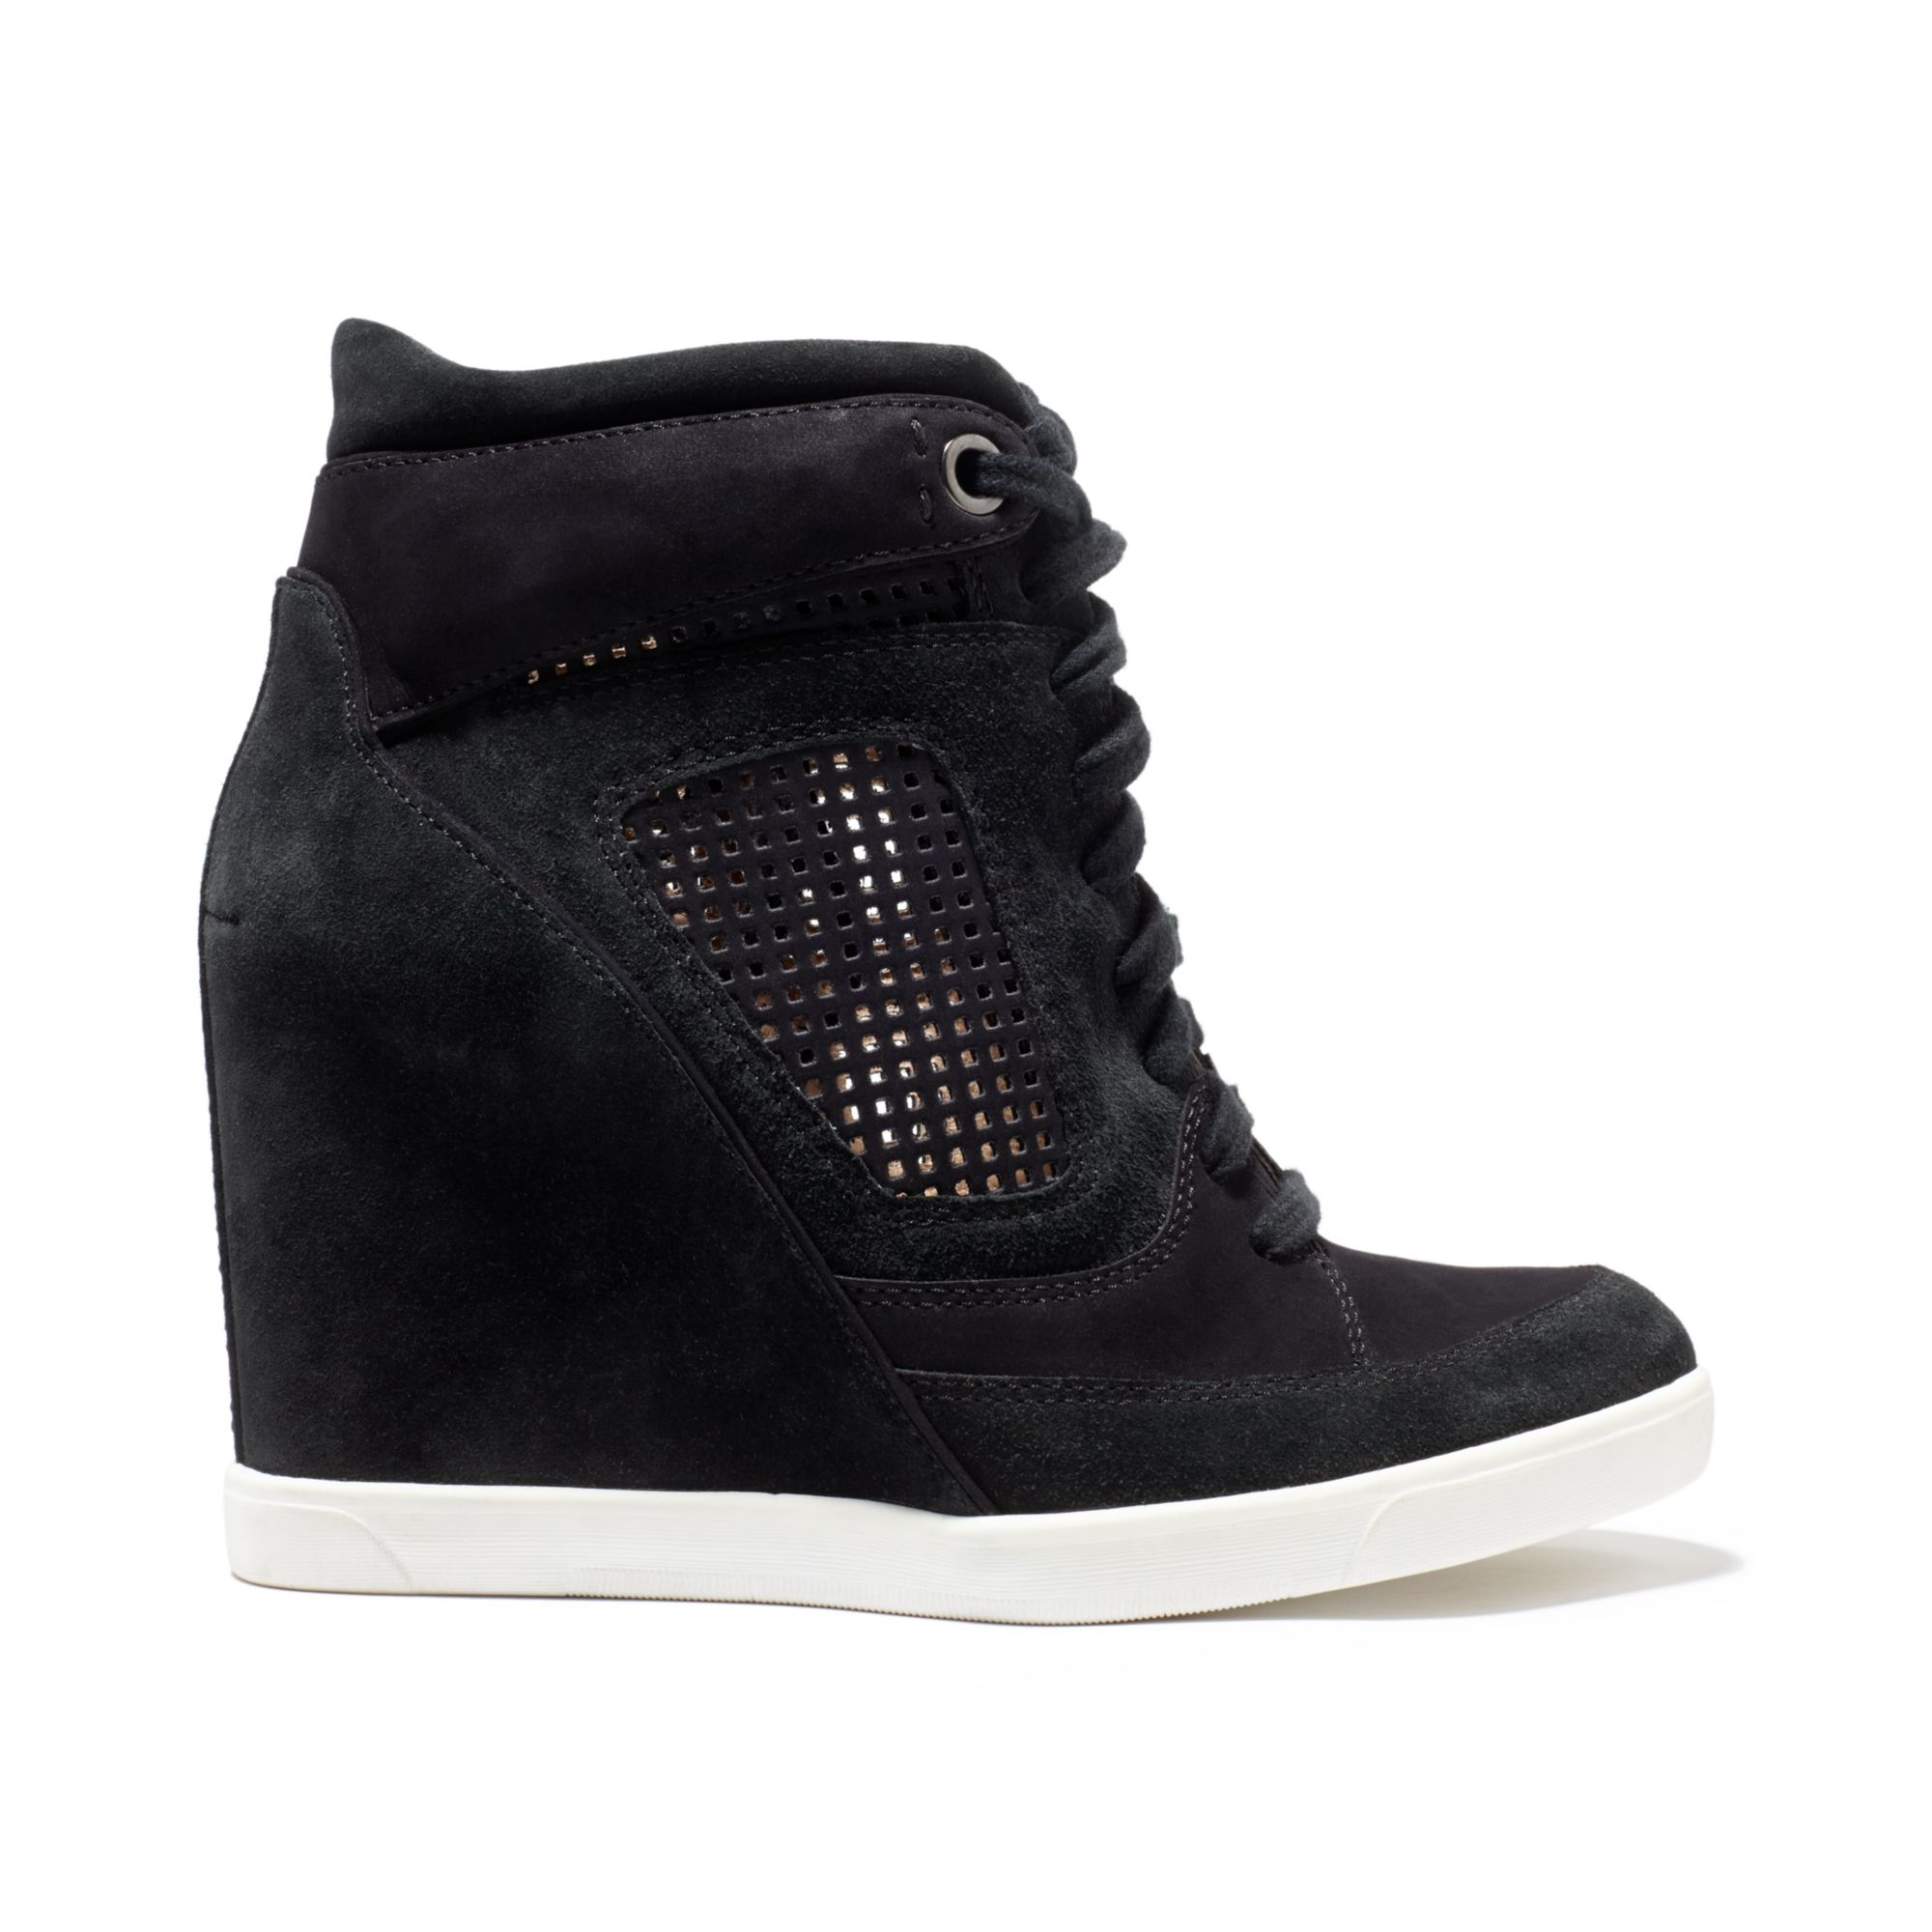 63ebf5f5933 Lyst - French Connection Marla Wedge Sneakers in Black